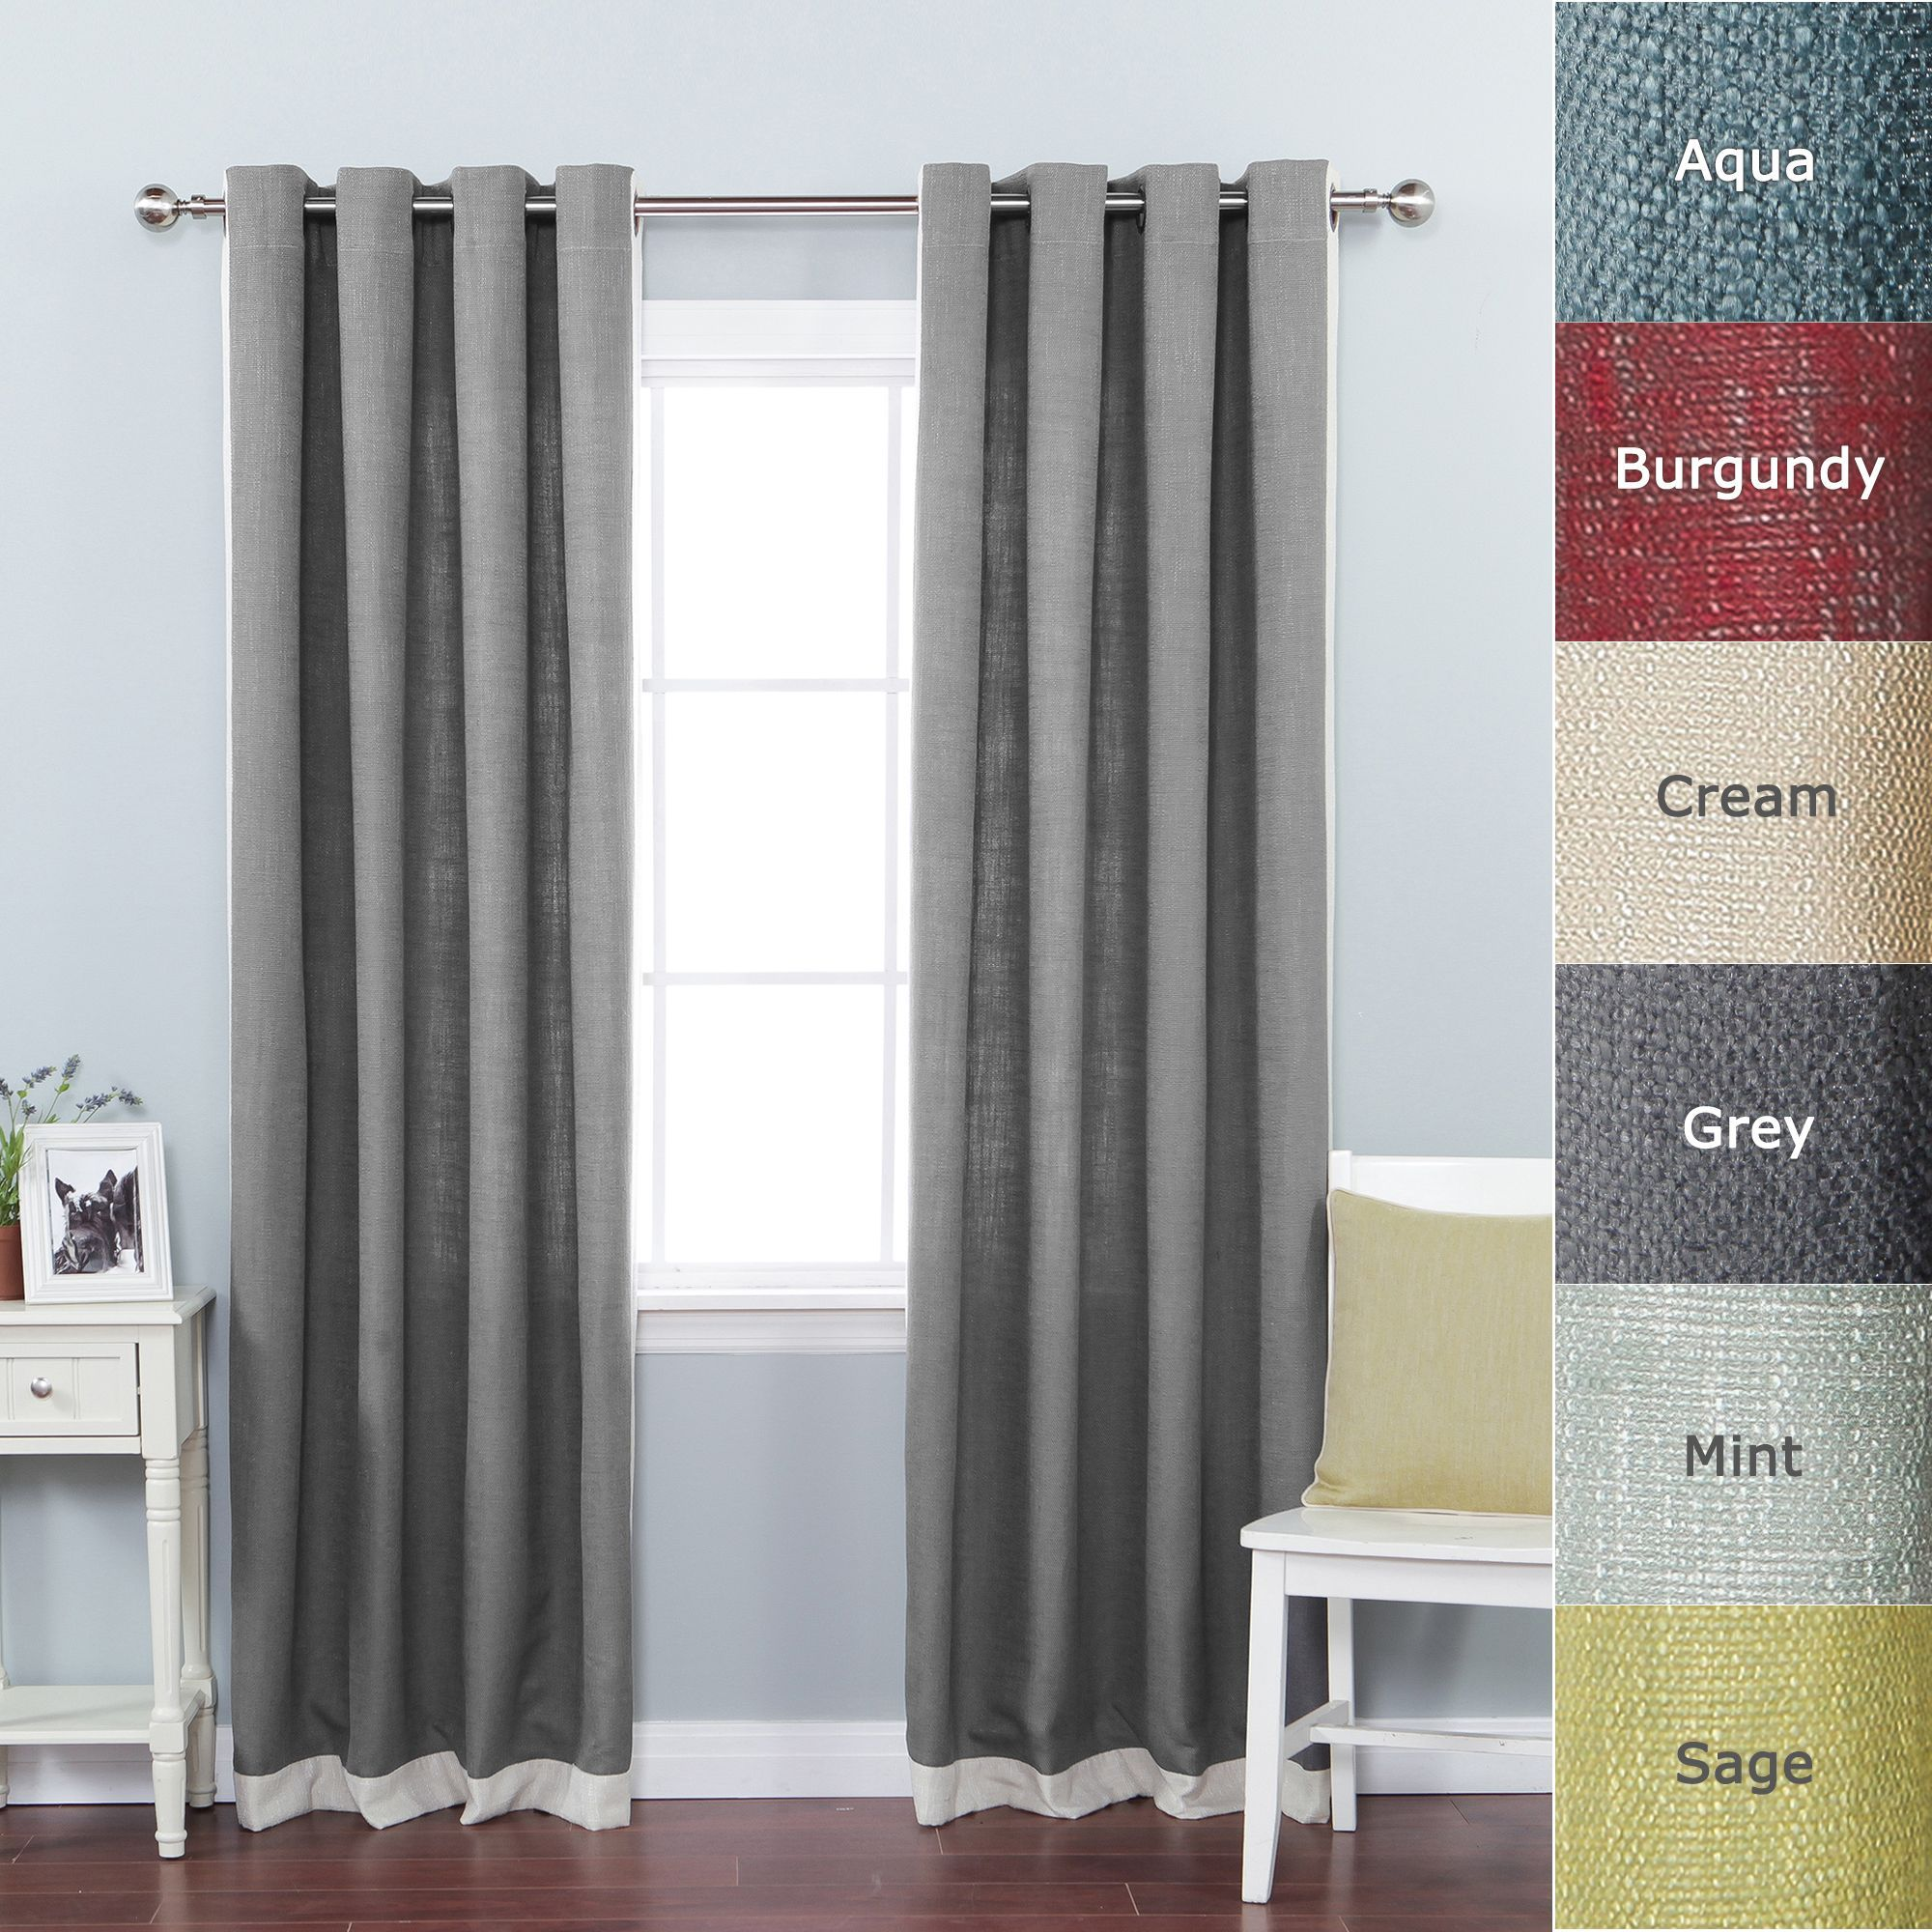 floral design embroidered item linen fancy in sheer curtains made curtain semi from modern faux home door kitchen fabrics short garden ready